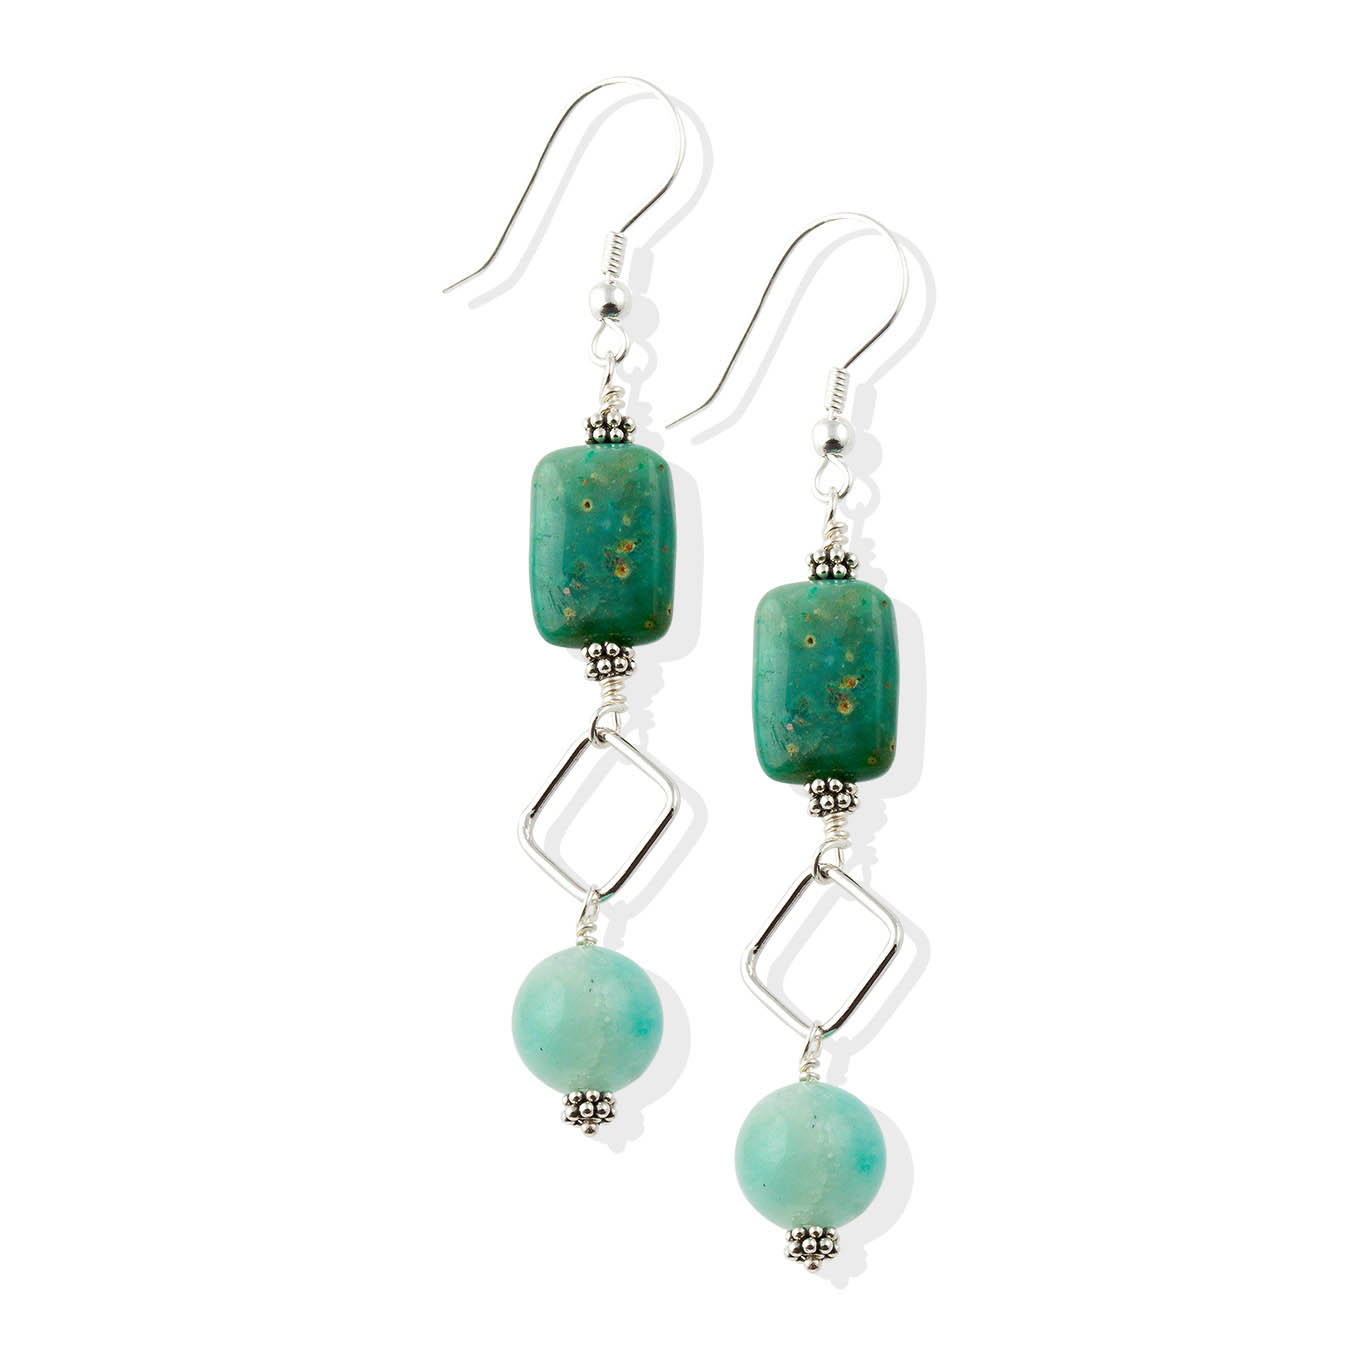 Handmade 925 wire pendant jewelry made of amazonite and chrysocolla